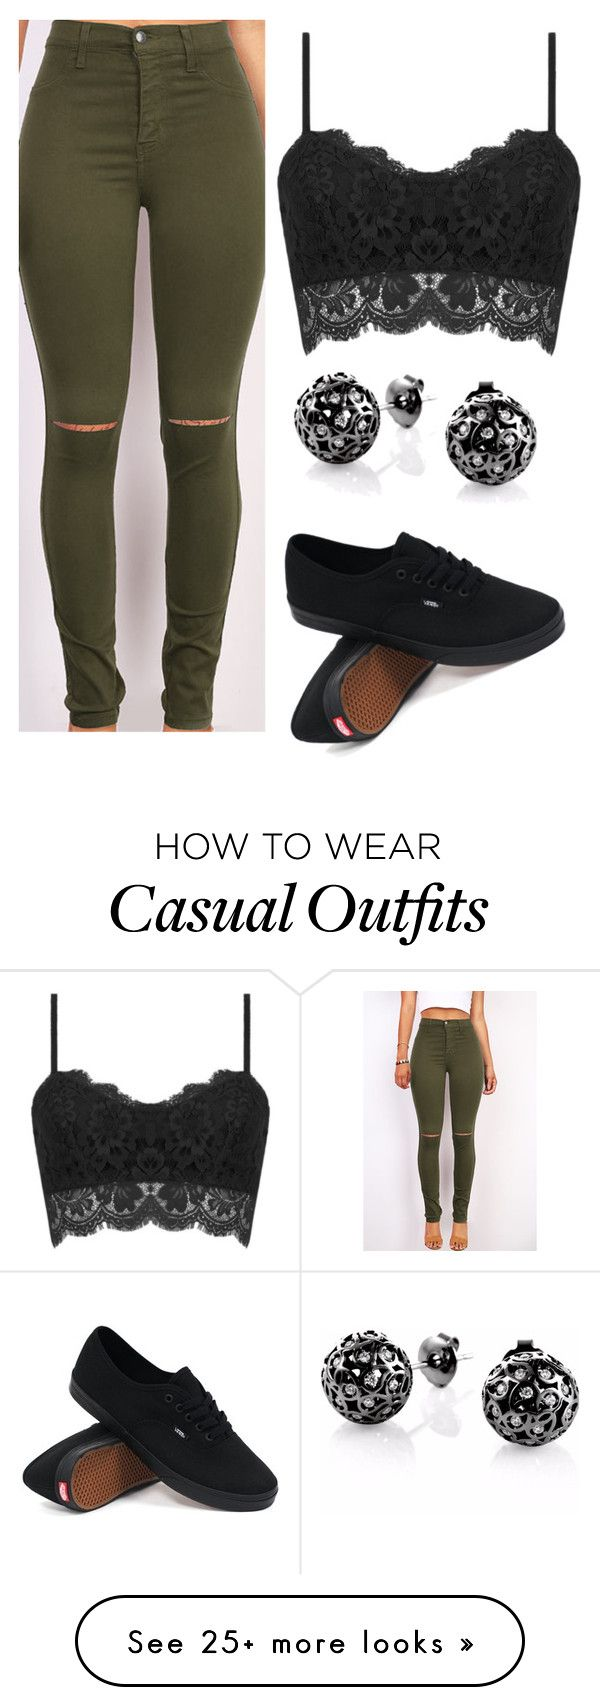 casual by ruthjauregui on Polyvore featuring Vans, Sonal Bhaskaran, womens clothing, women, female, woman, misses and juniors